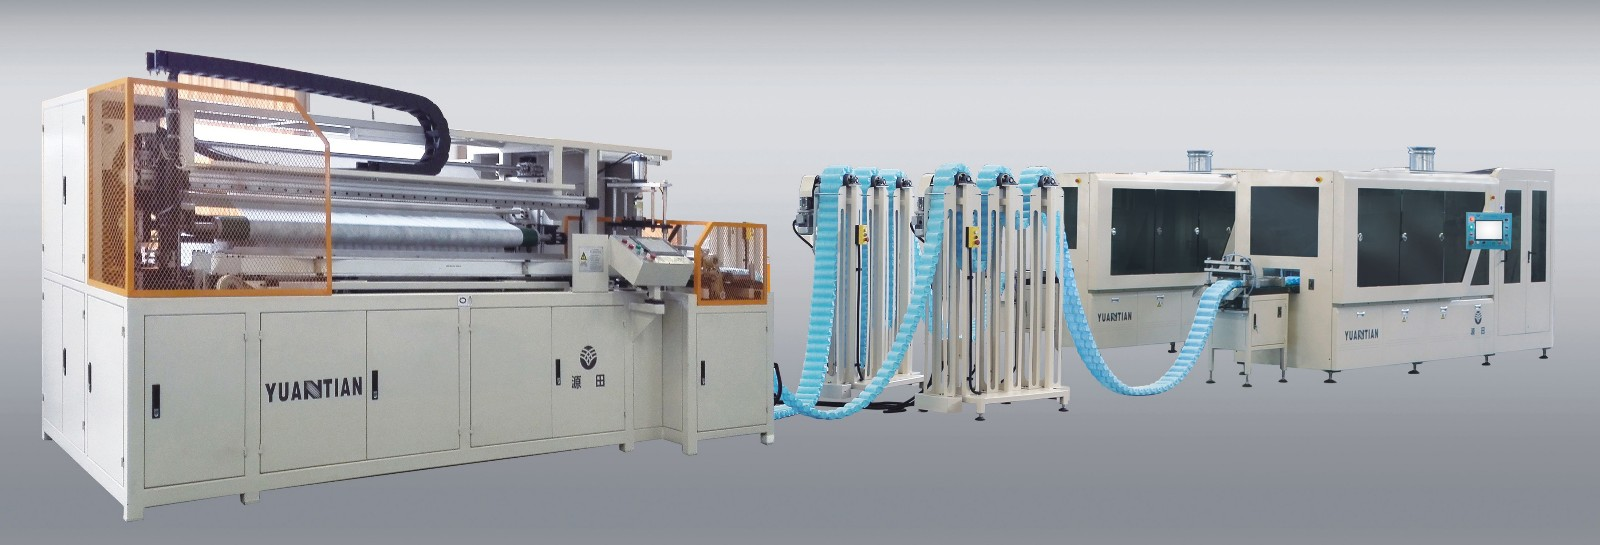 spring Automatic High Speed Pocket Spring Machine assembling production YUANTIAN Mattress Machines